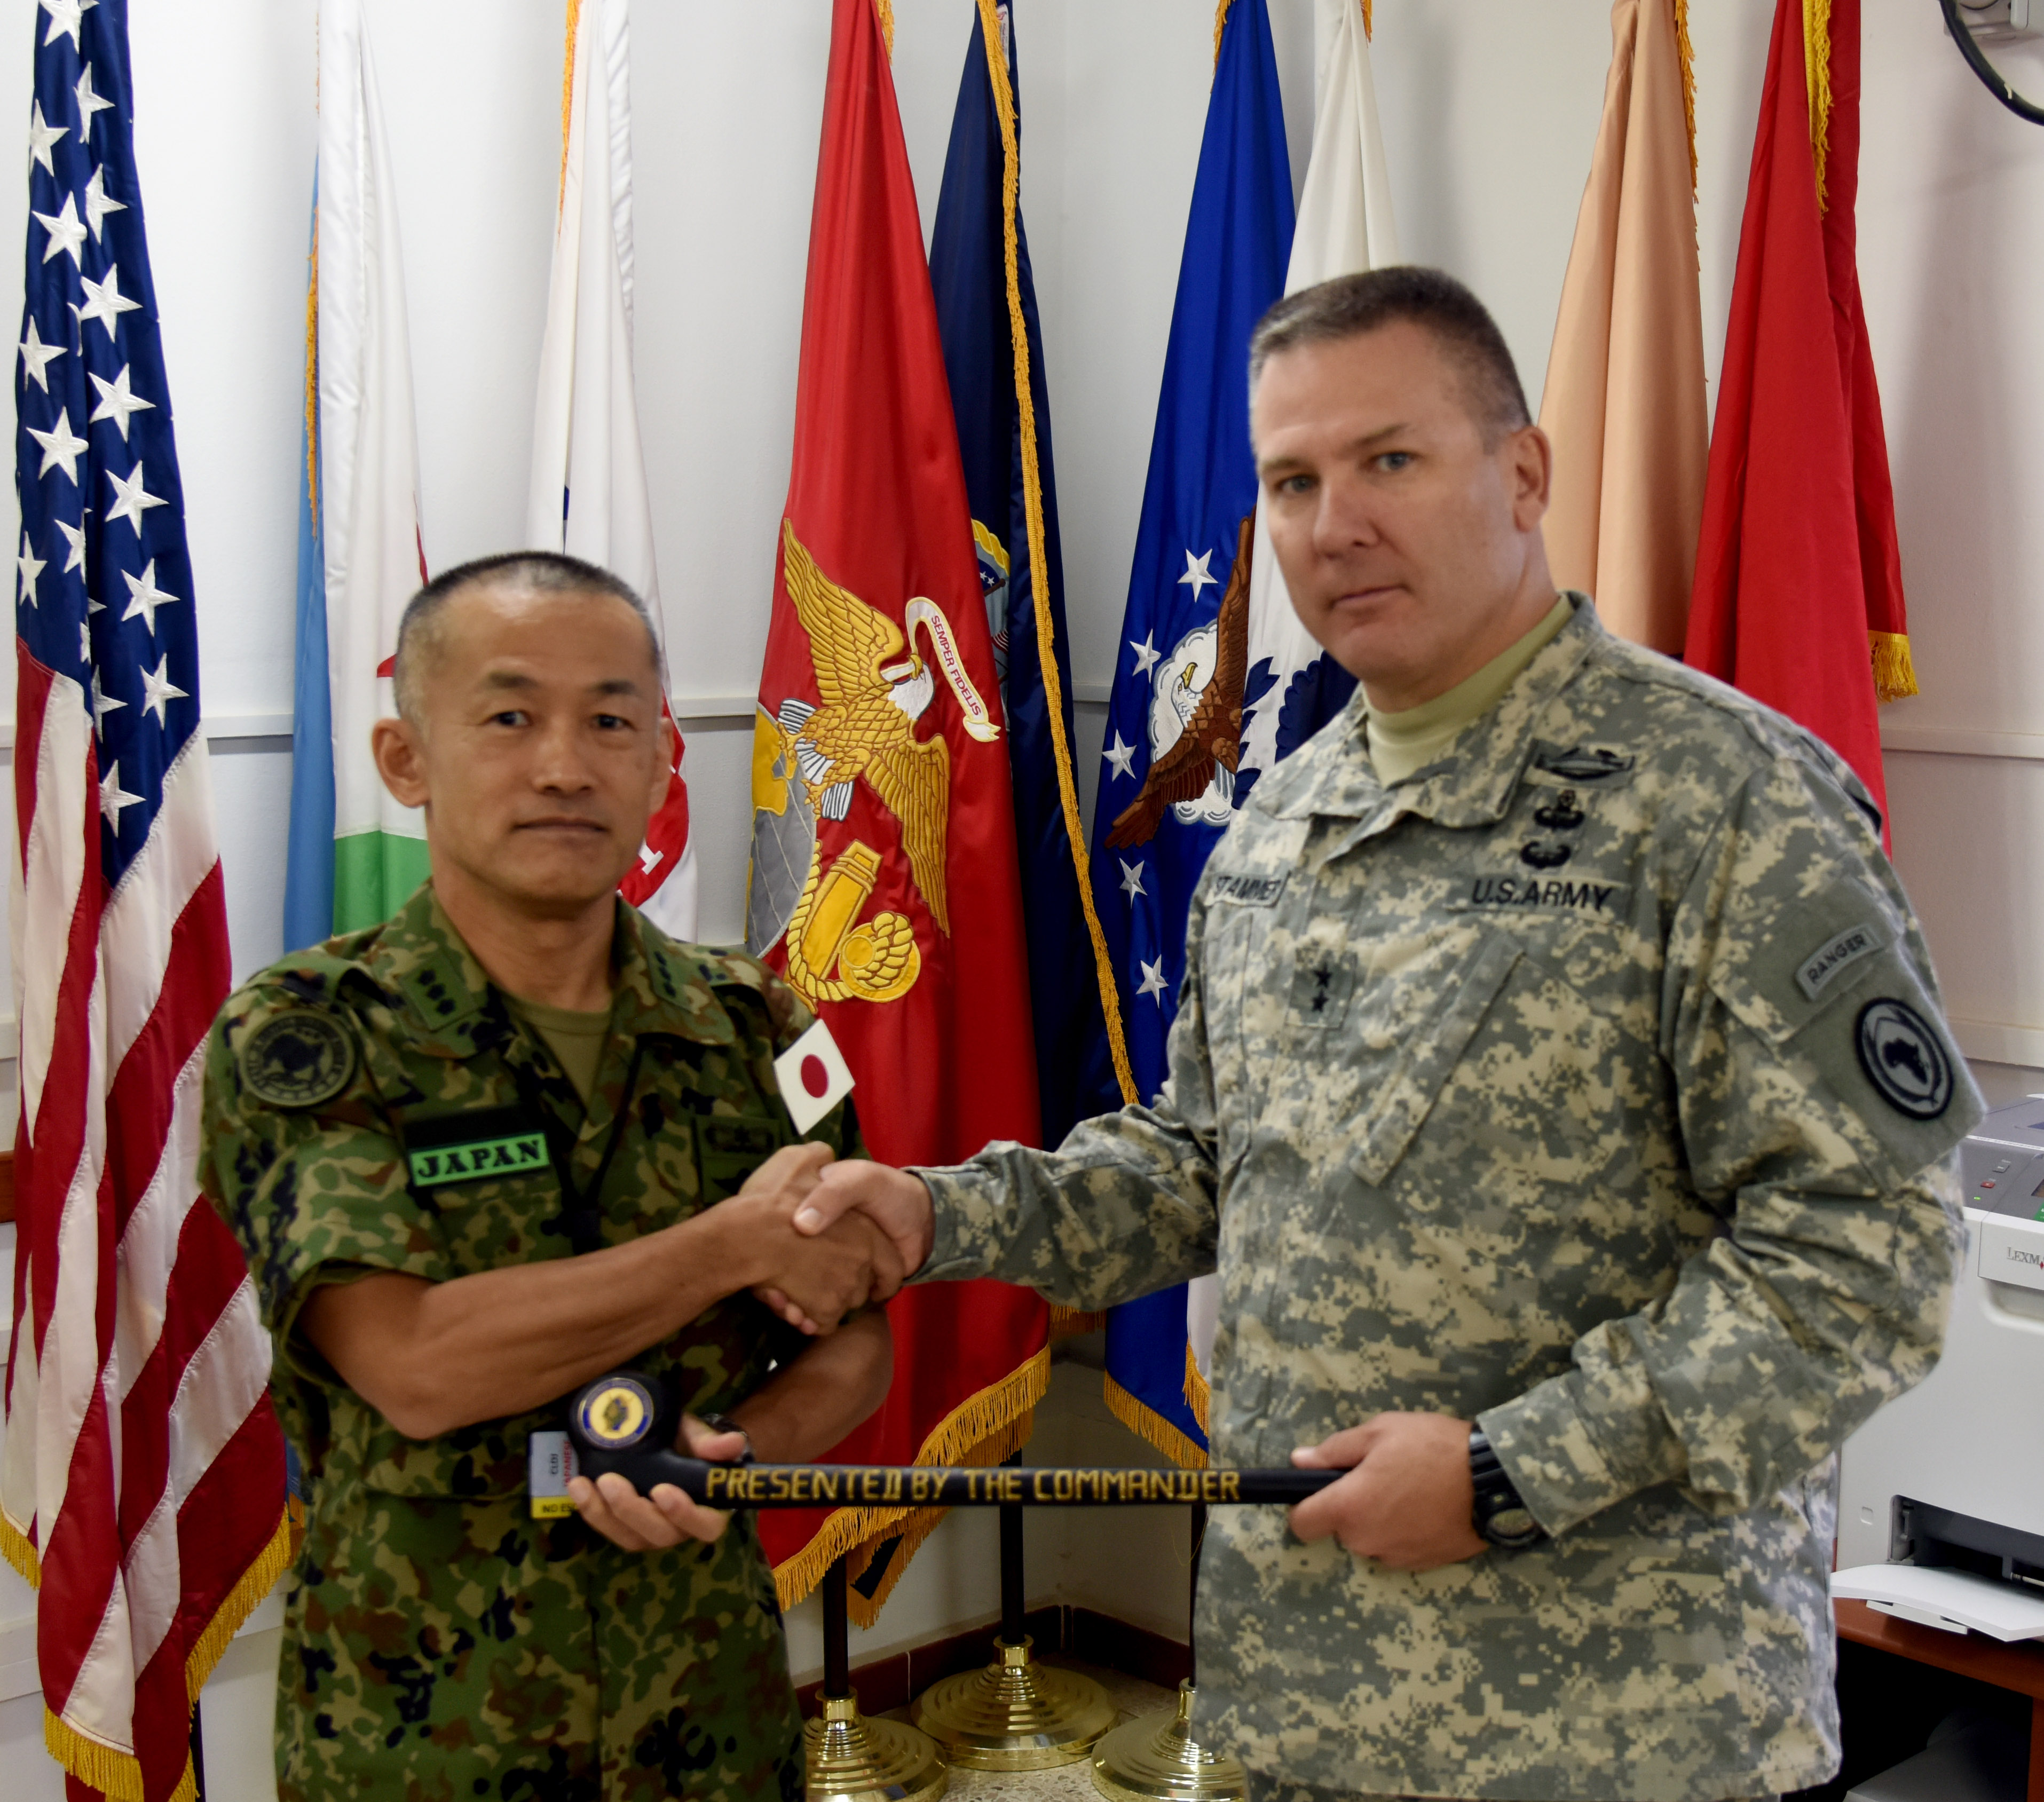 151009-N-DJ346-020 CAMP LEMONNIER, Djibouti (October 9, 2015) Major General Mark R. Stammer, Commanding General, Combined Joint Task Force – Horn of Africa, presents Lt. Gen. Hiromichi Kawamata, Commanding General, Japan Ground Self Defense Force, Central Readiness Force, with a Maasai rungu baton. The two leaders met to discuss future objectives and information sharing opportunities. General Stammer told General Kawamata that Japanese Defense Forces are and remain valued friends and partners of CJTF-HOA. (U.S. Navy photo by Chief Mass Communication Specialist Donald W. Randall/Released)